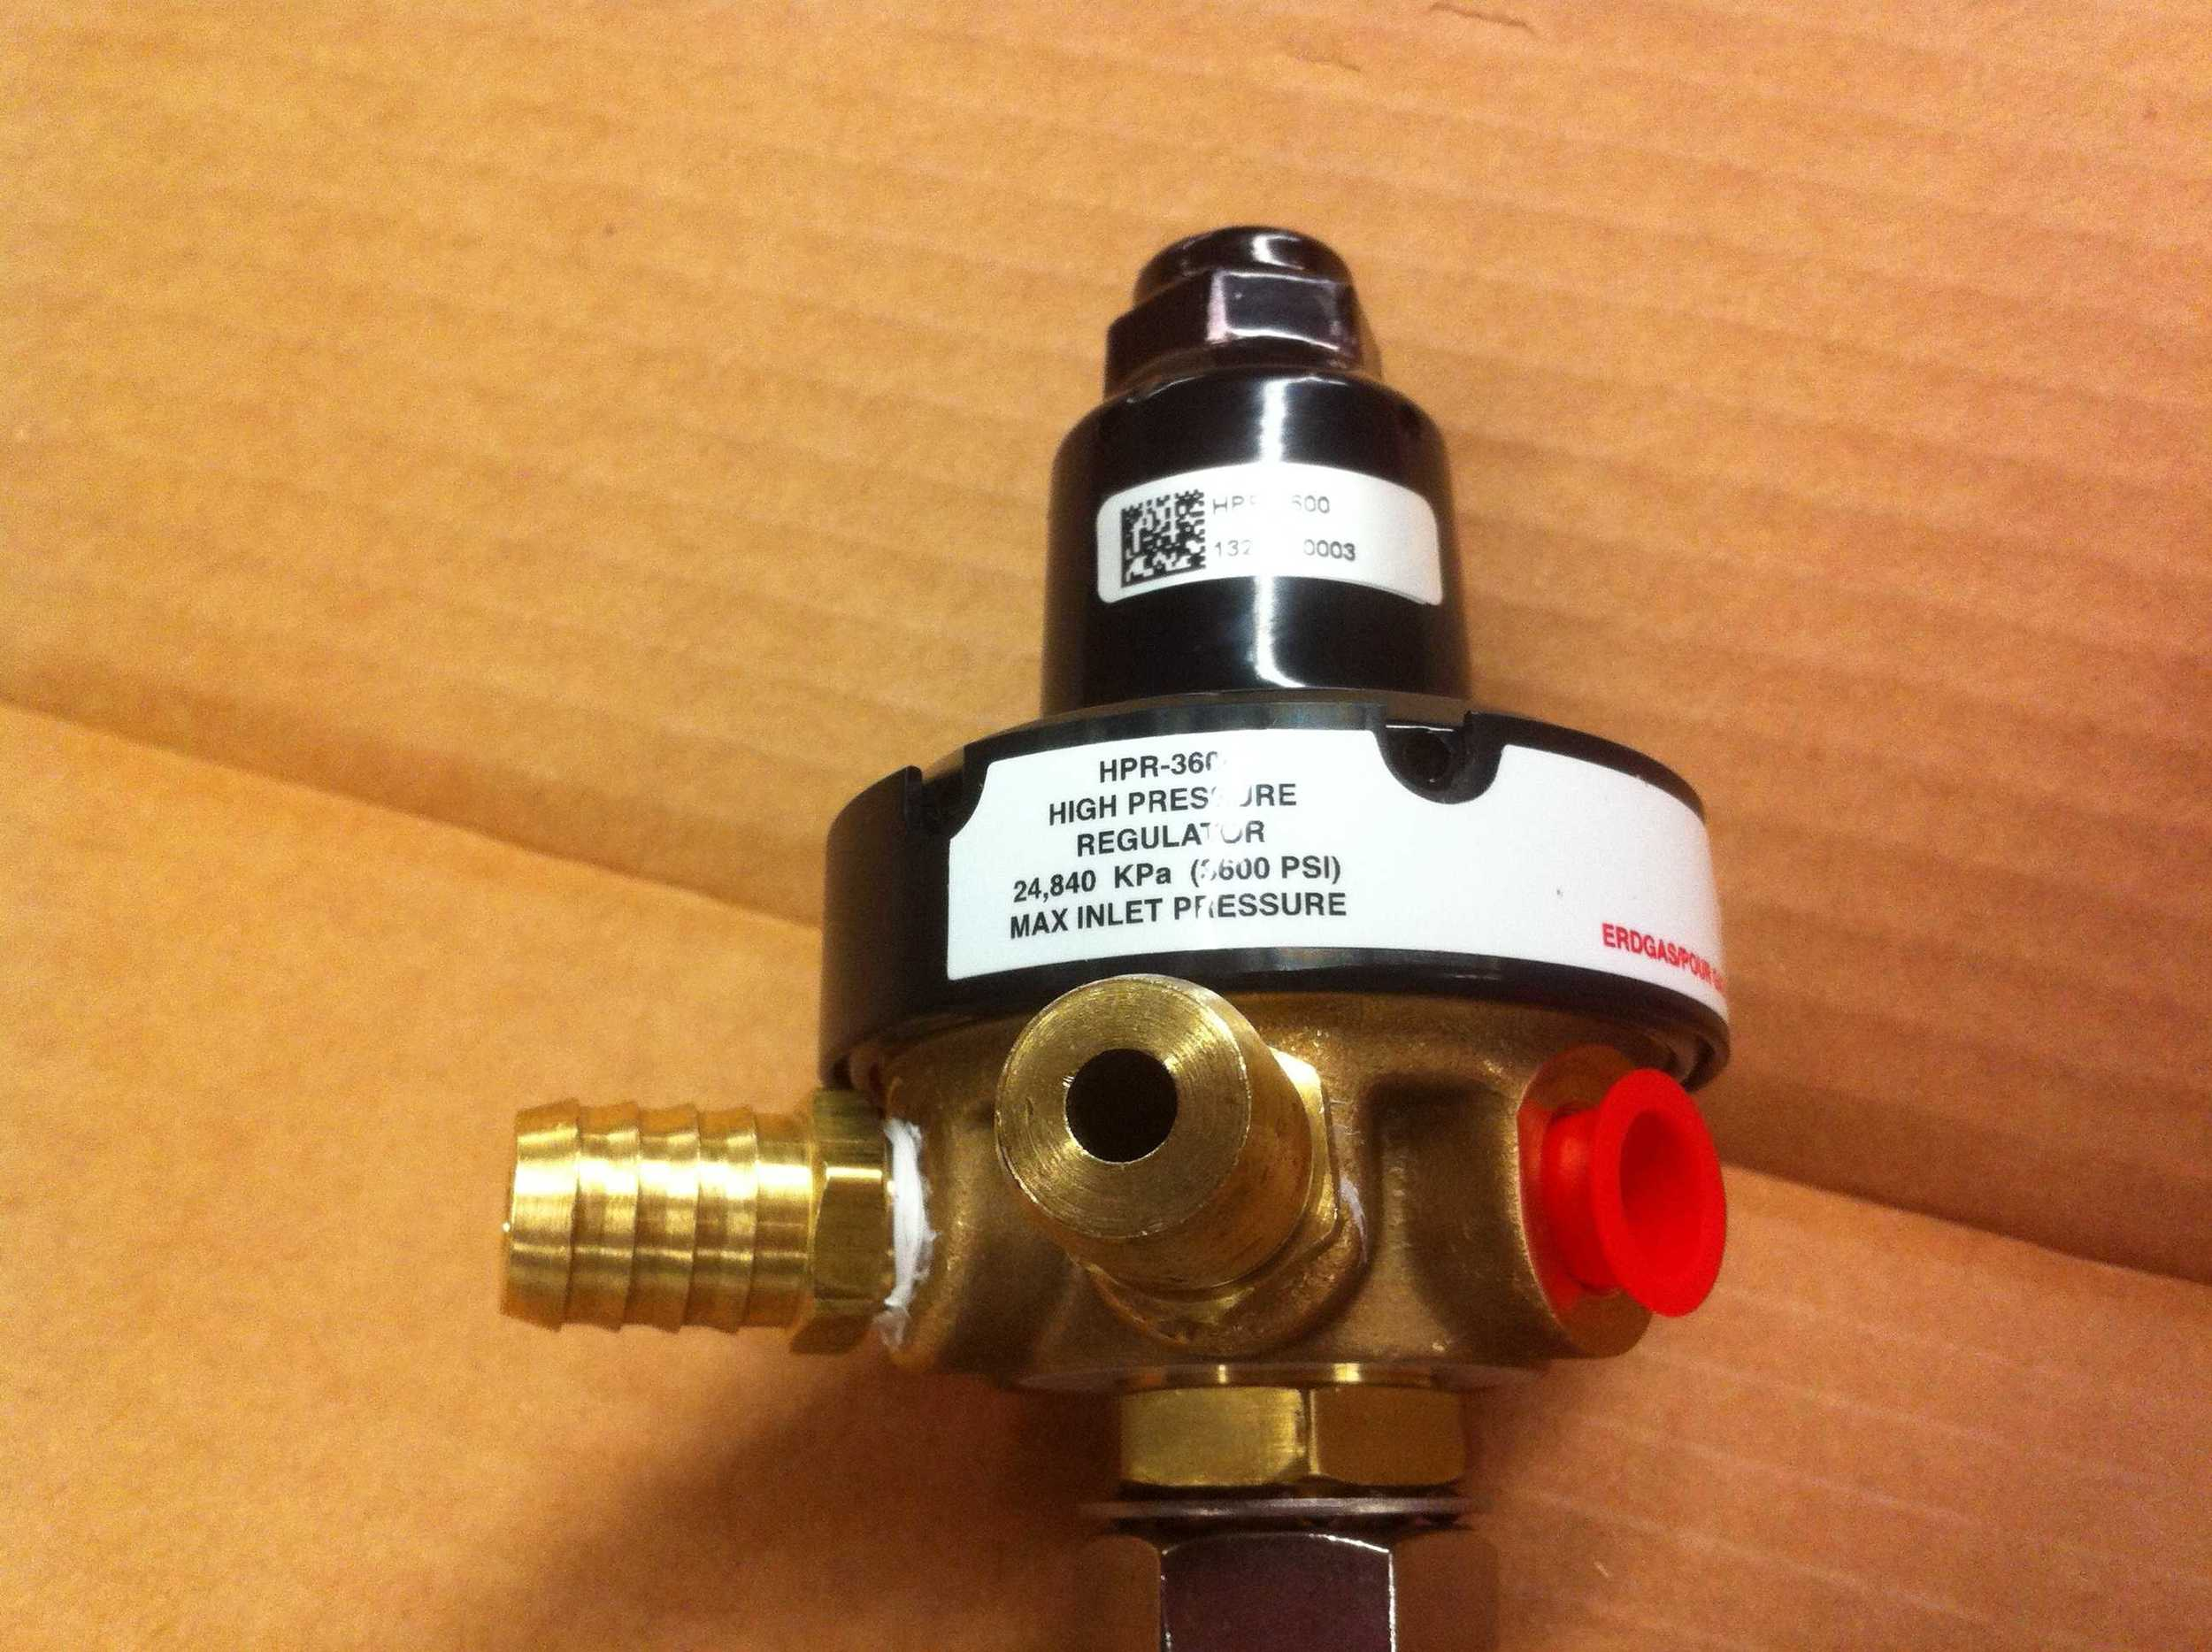 High pressure regulator to drop the pressure from 2000 to 100 psi.